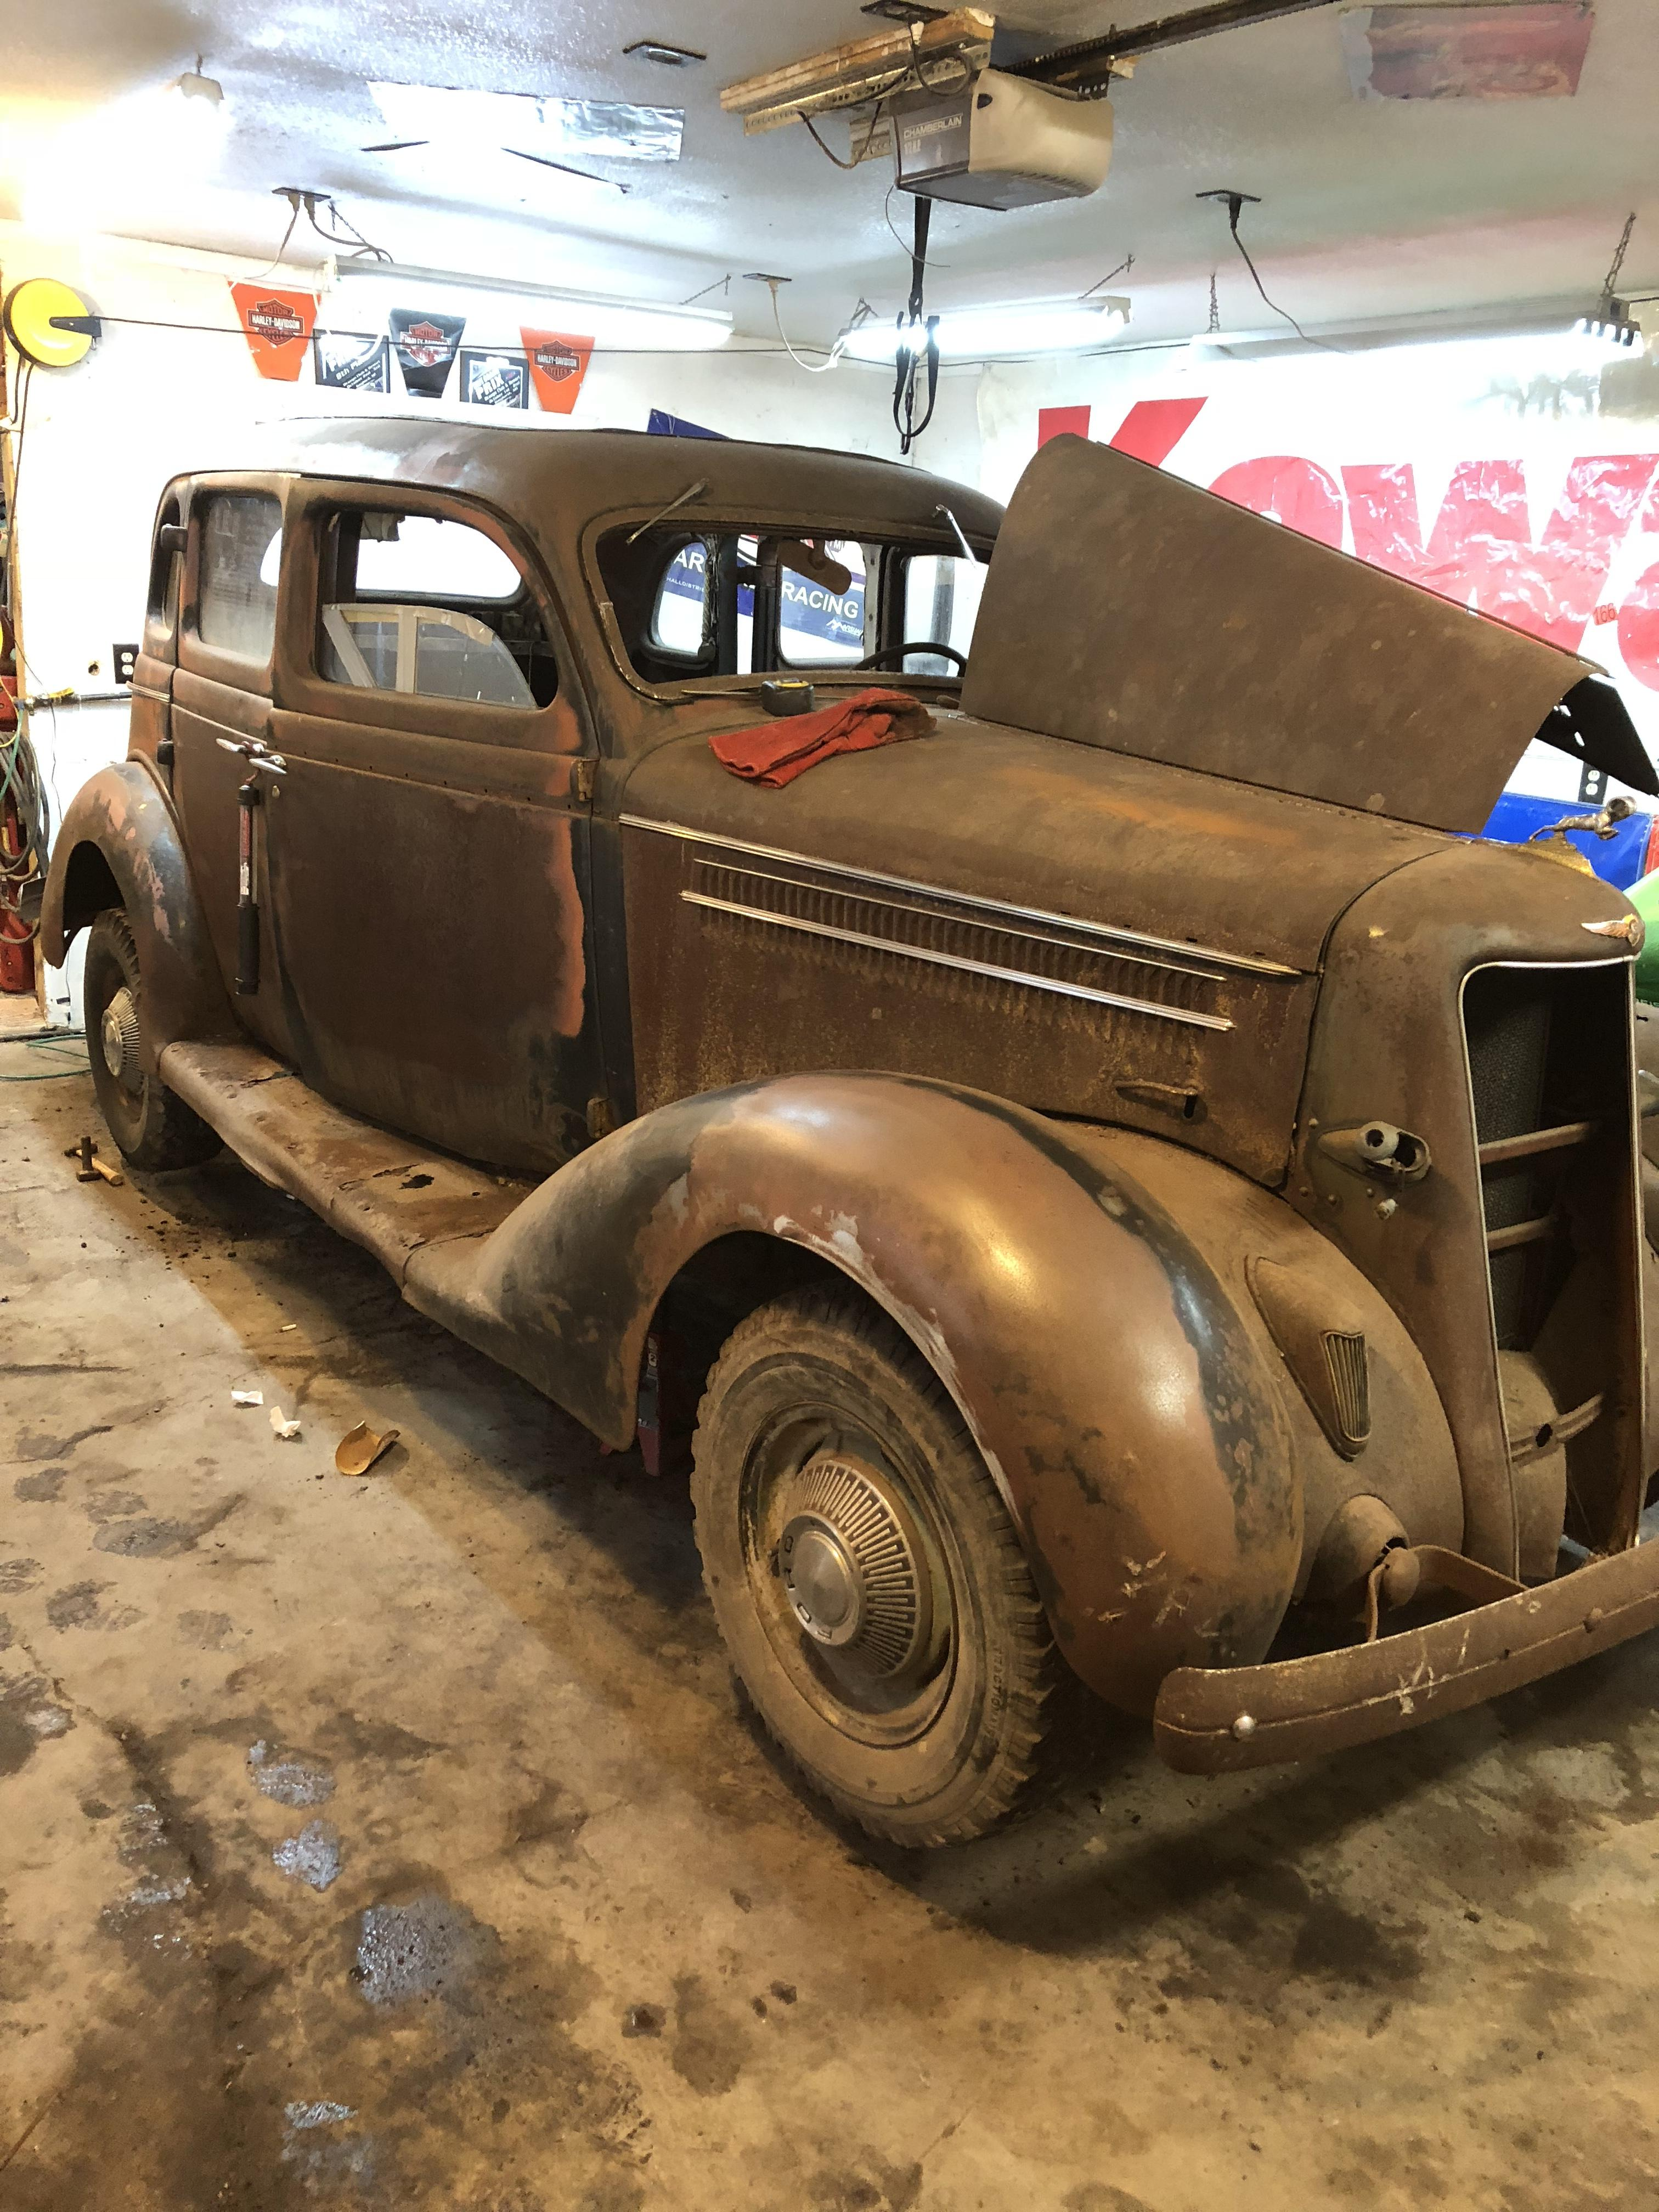 any interest in 1935 dodge brothers sedan parts - Parts For Sale ...